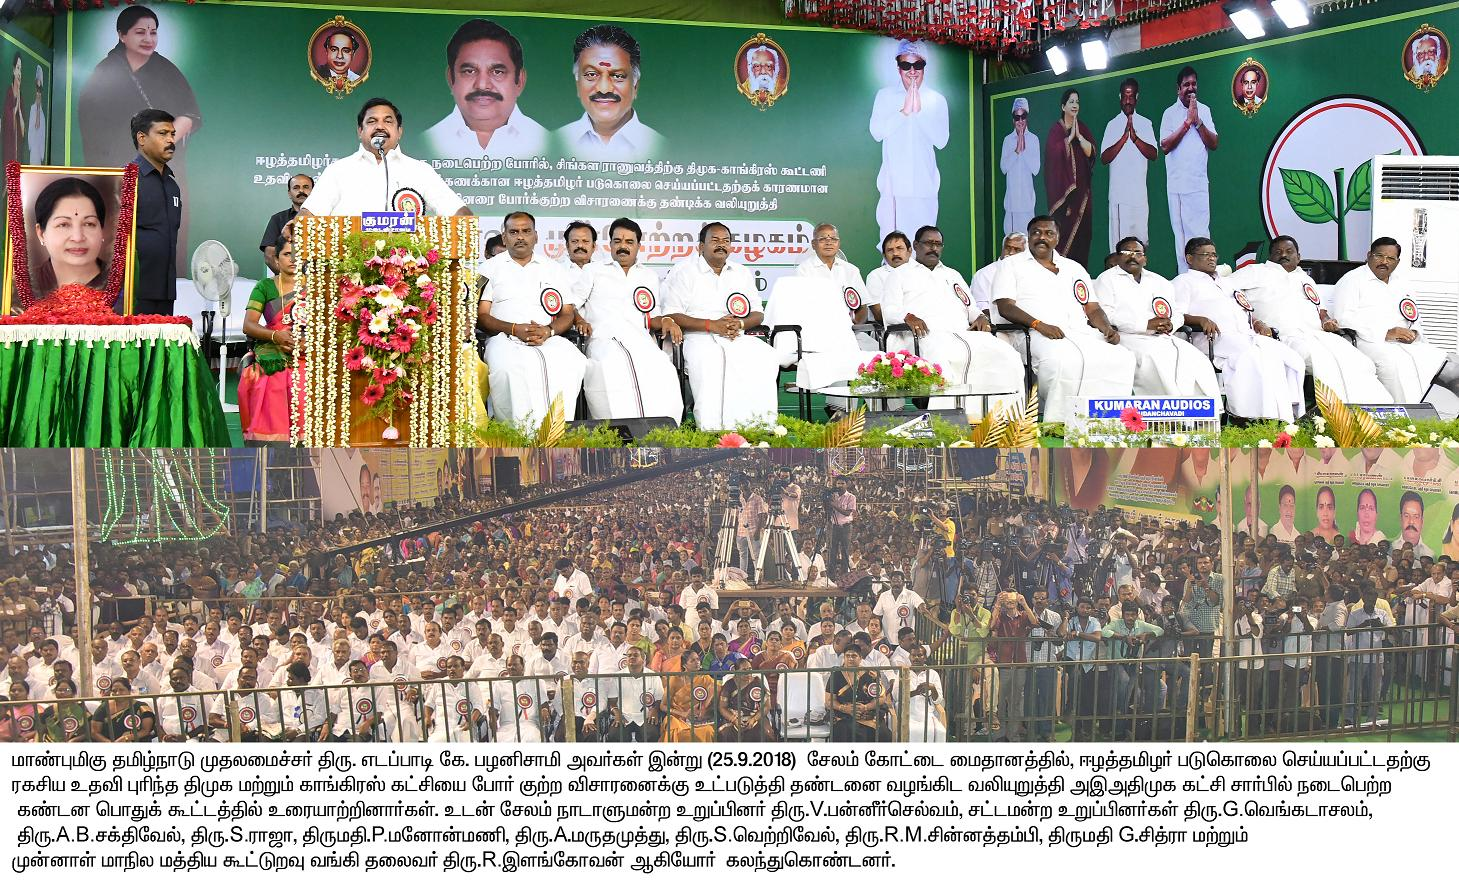 Charging that the Congress and the DMK played a role in the genocide of Sri Lankan Tamils, Chief Minister Edappadi K Palnisamy said that the two parties must be booked for war crimes.